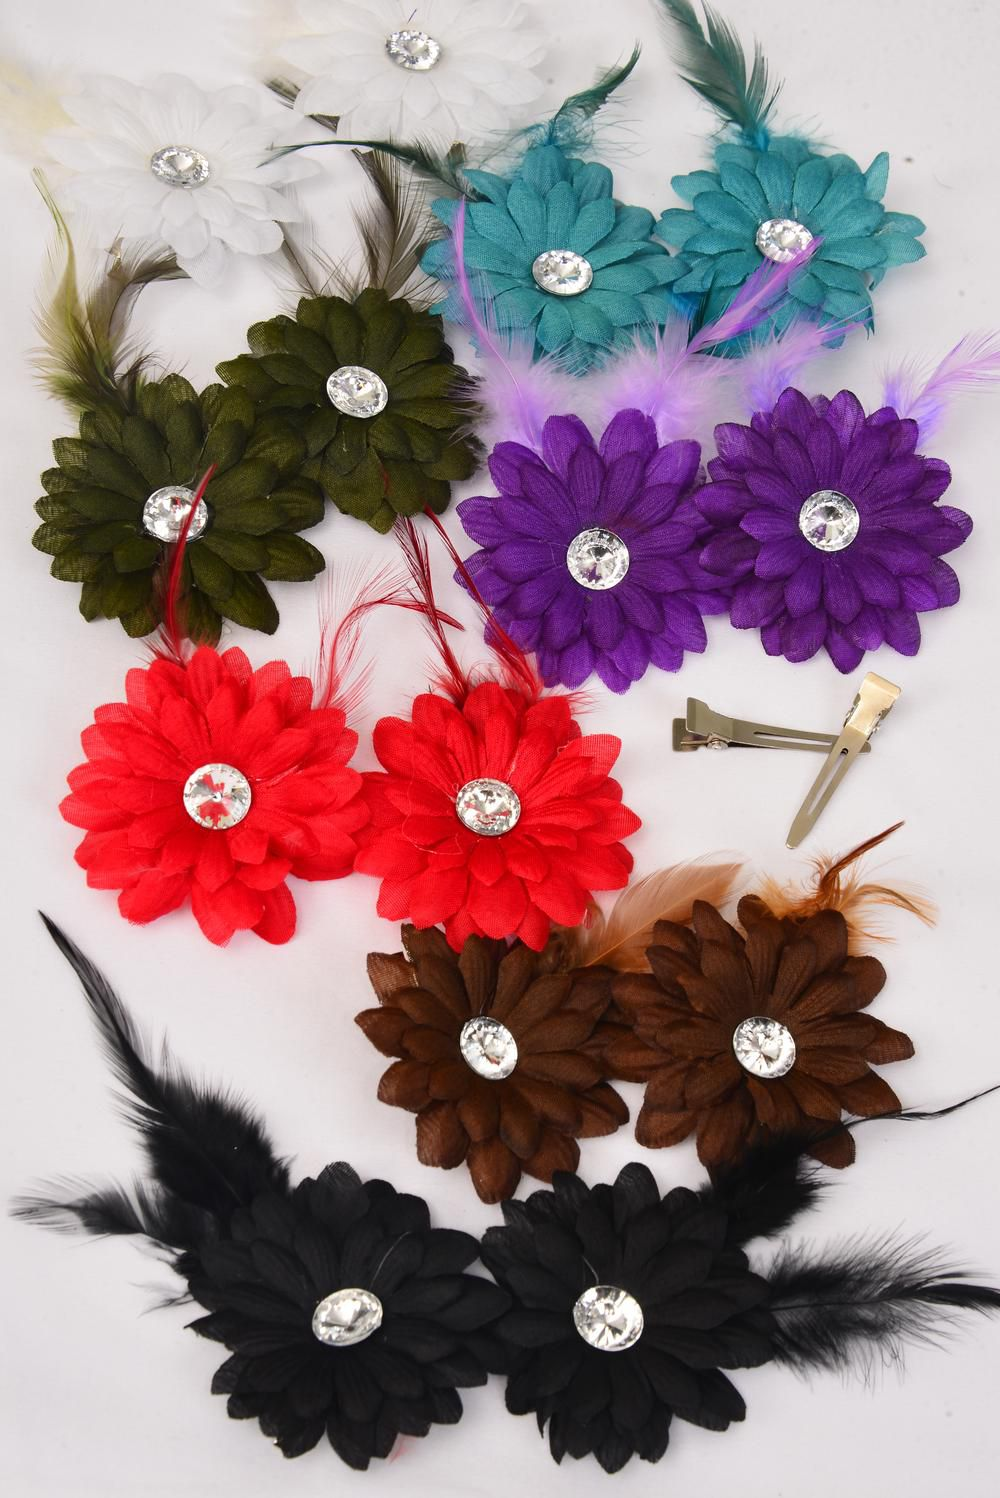 Flowers 24 pcs Alligator Clip Feather With Daisy Flowers Dark Multi ...